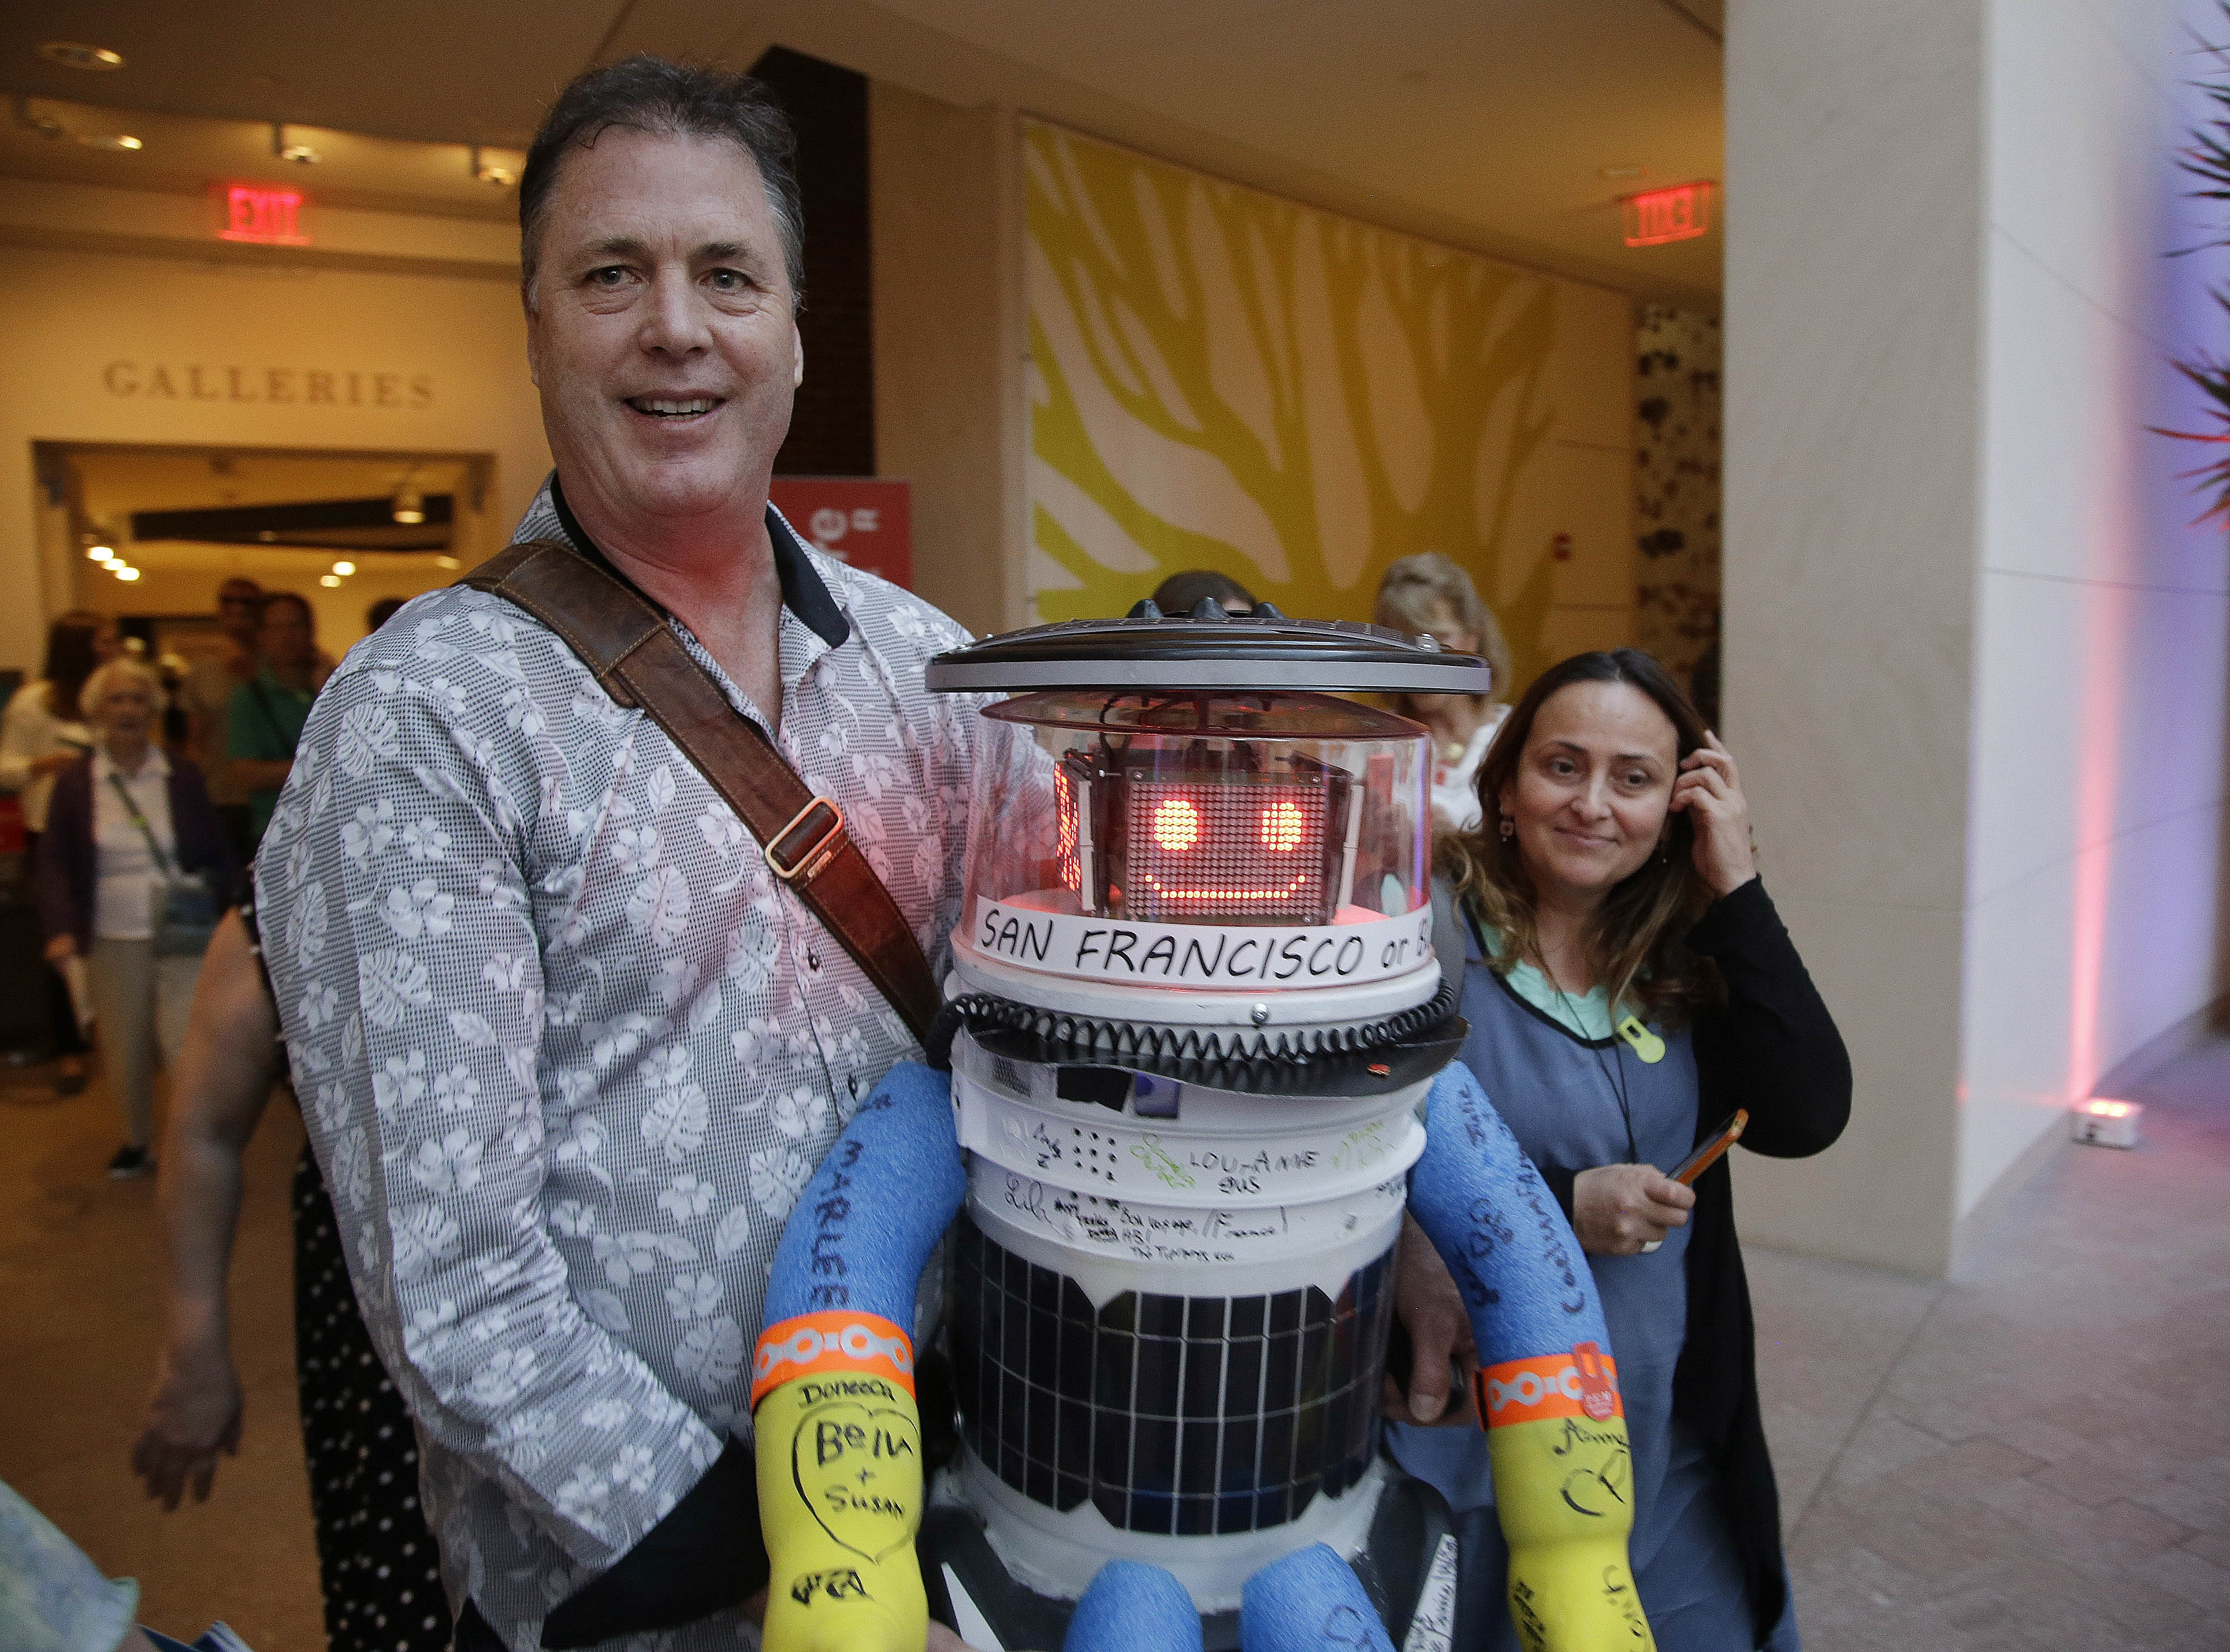 Co-creator David Harris Smith carries hitchBOT, a hitchhiking robot, during its' introduced to an American audience at the Peabody Essex Museum Thursday, July 16, 2015, in Salem, Mass. HitchBOT is set to embark on its' first cross-country hitchhiking trip of the U.S., after completing similar tips in Canada and Europe. The plans are for hitchBot to leave the Boston area Friday with a final destination goal of reaching San Francisco. Photo: AP